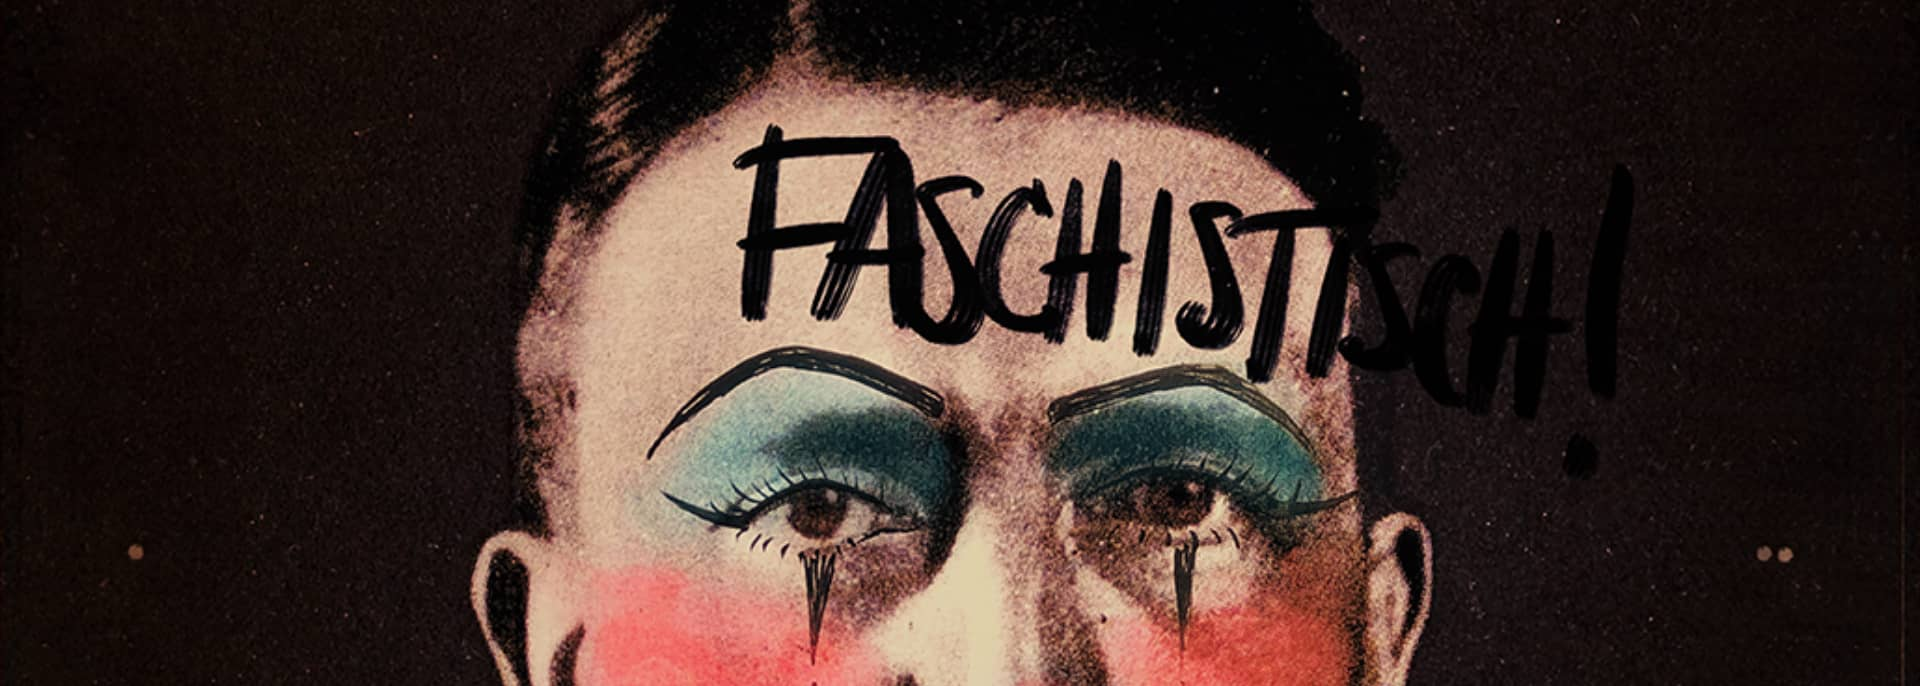 Cabaret poster with Hitler's face defaced with lipstick.